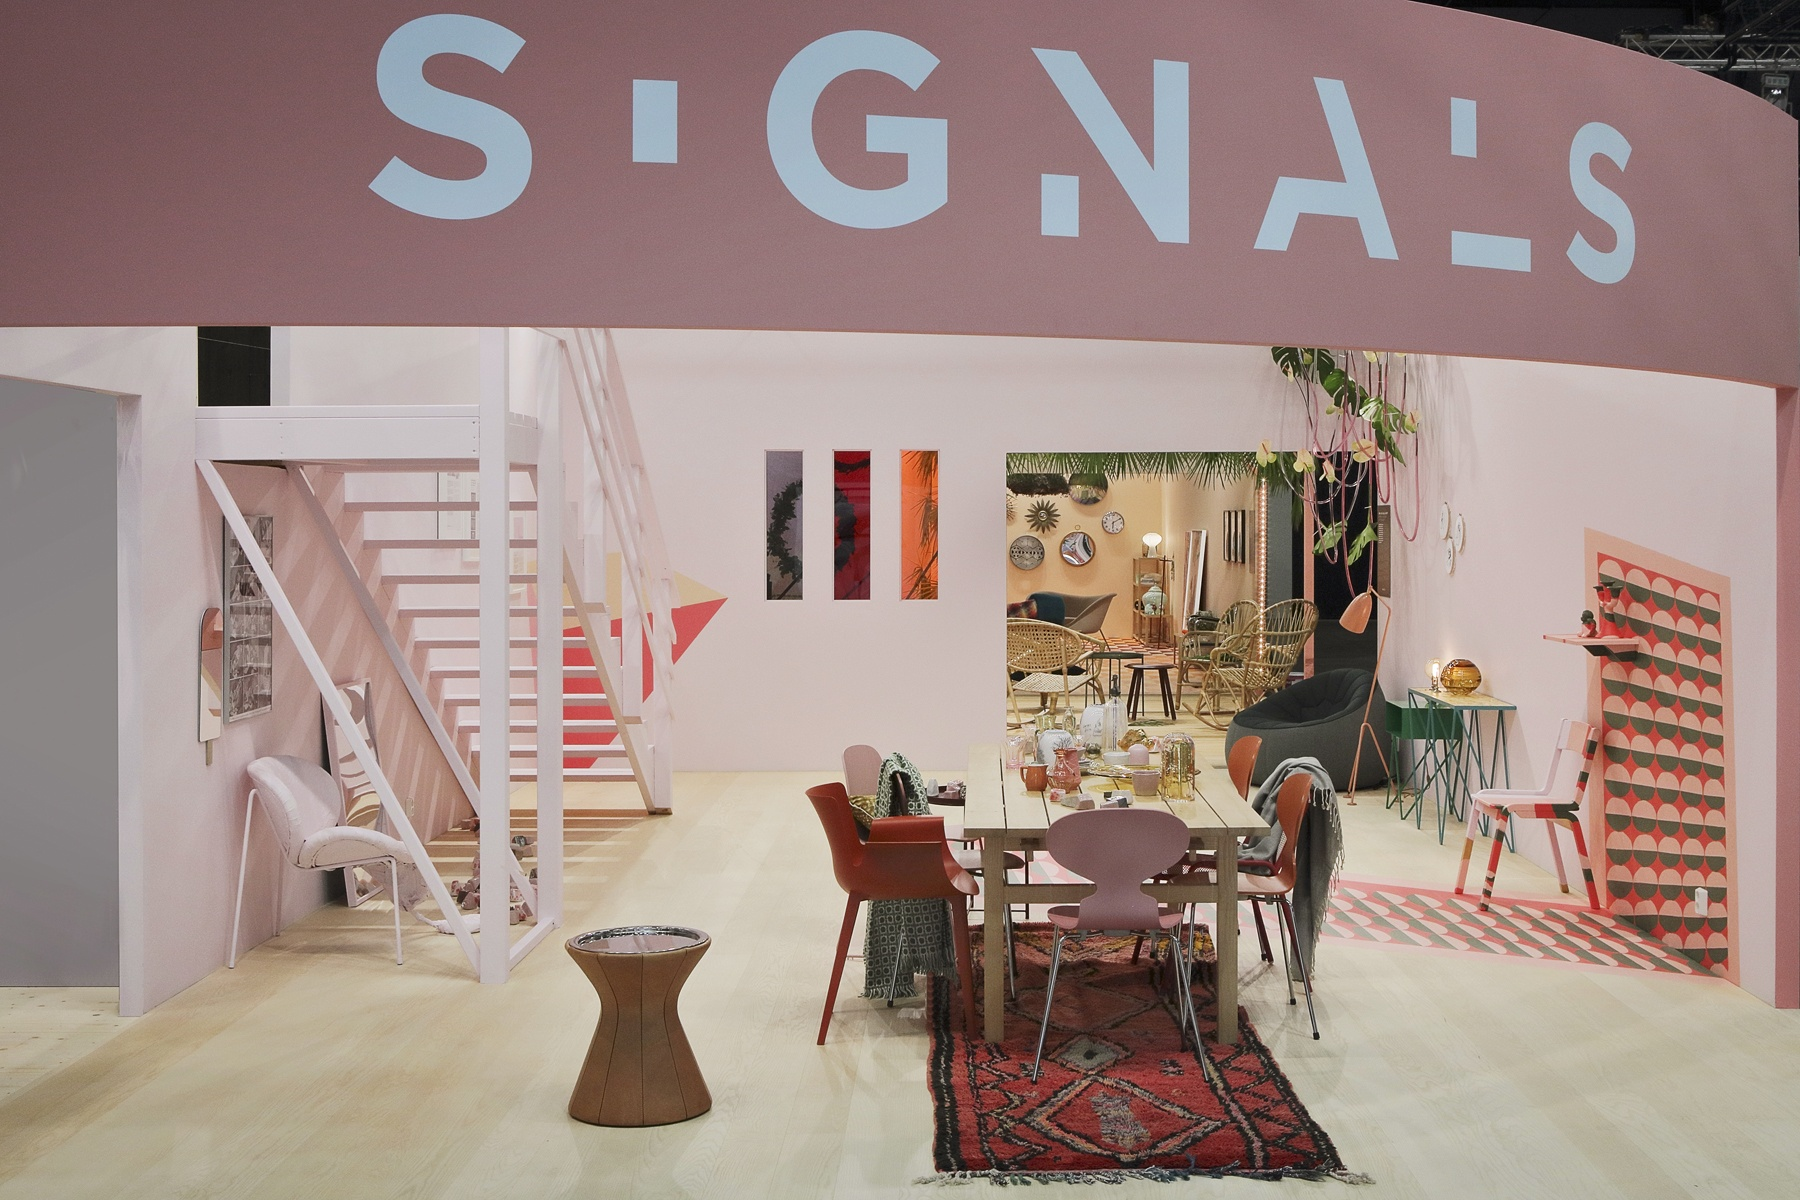 Signals Trend Exhibition at Habitare 2017